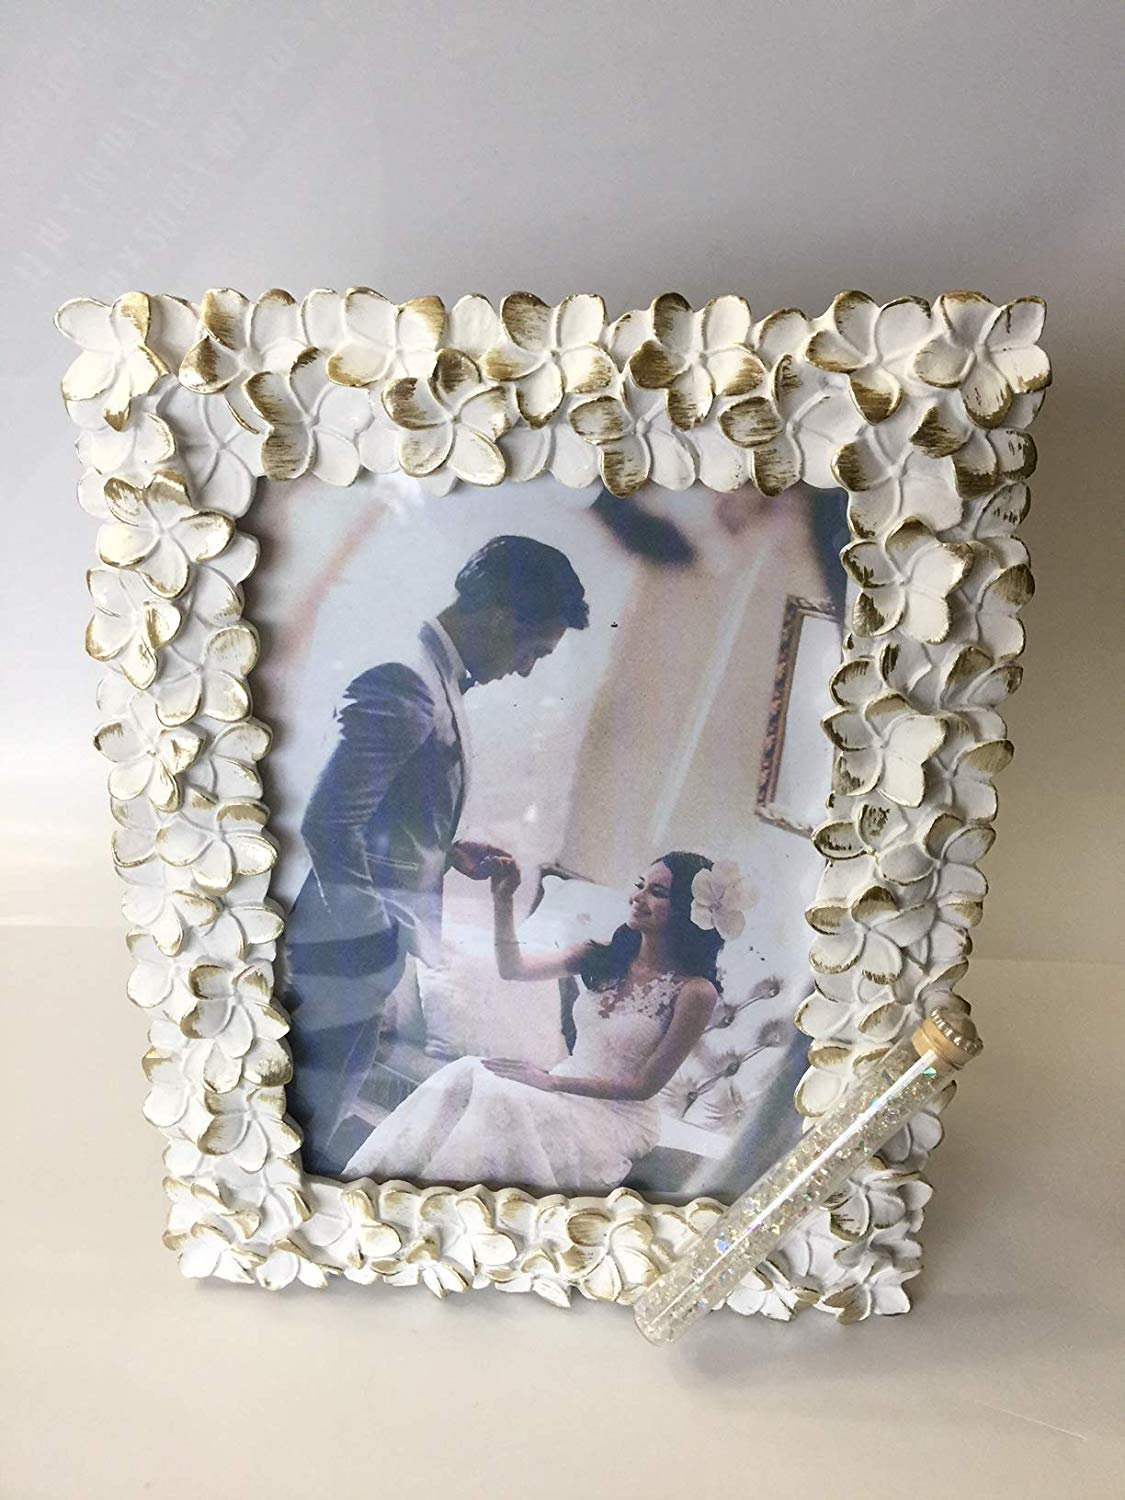 Jewish Wedding White With a touch of Gold Flowers Photo Picture Frame With a Container for Broken Wedding Glass, 5 x 7 Picture Bridal Shower Or Wedding Gift